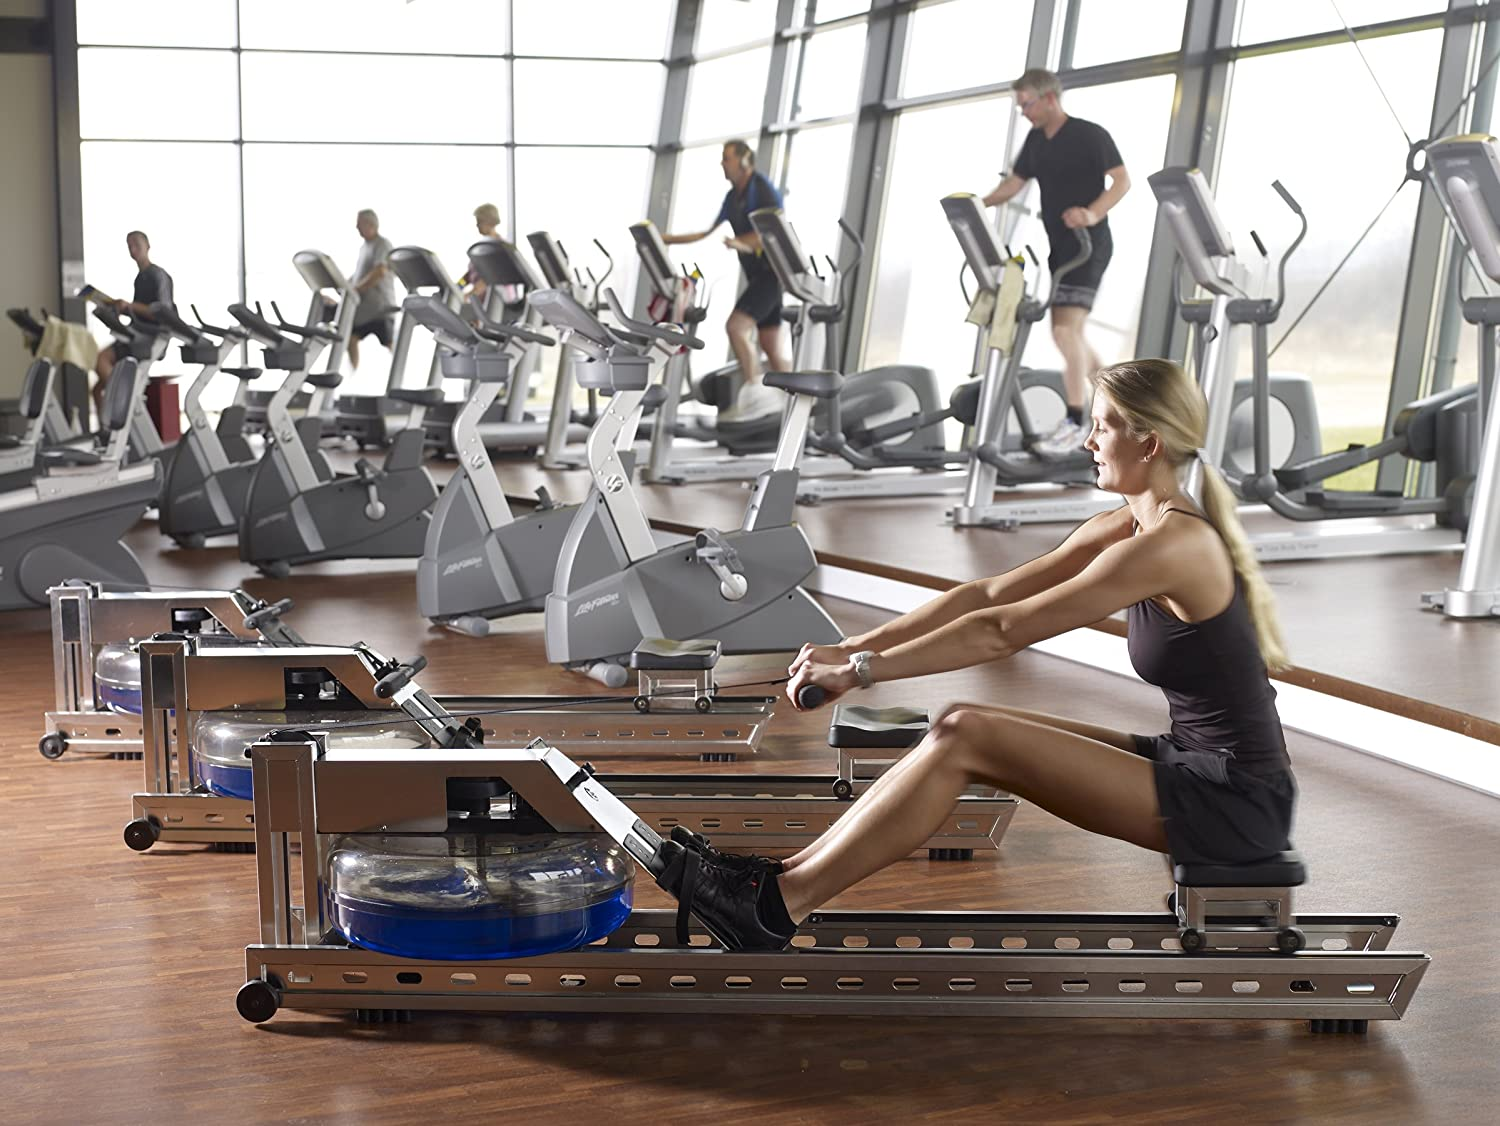 WaterRower S1 Rowing Machine in Brushed Stainless Steel with S4 Monitor